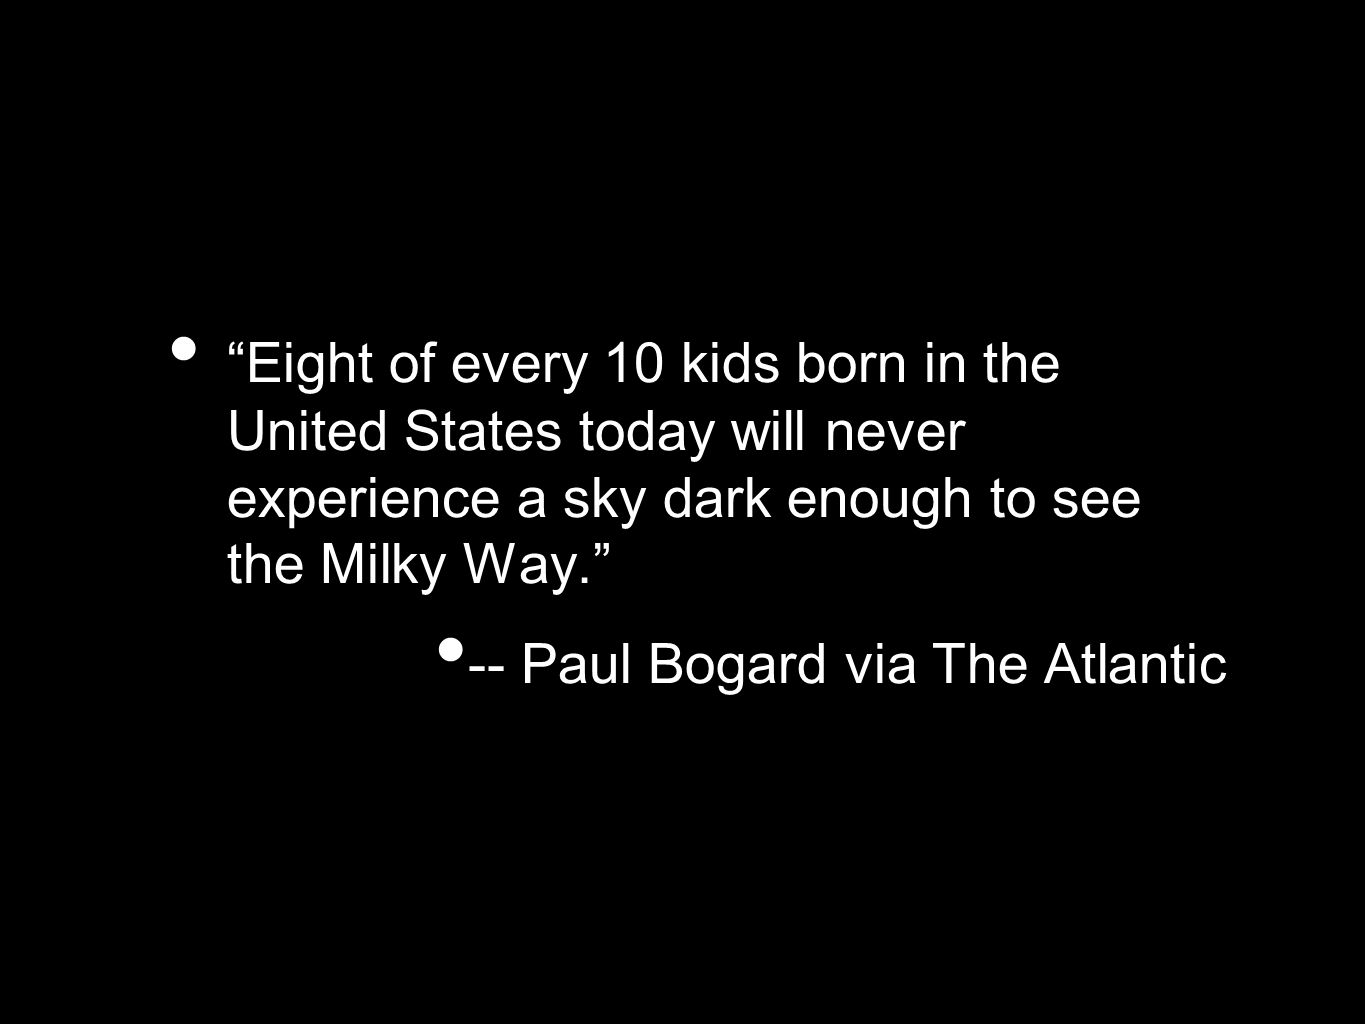 Eight of every 10 kids born in the United States today will never experience a sky dark enough to see the Milky Way. -- Paul Bogard via The Atlantic